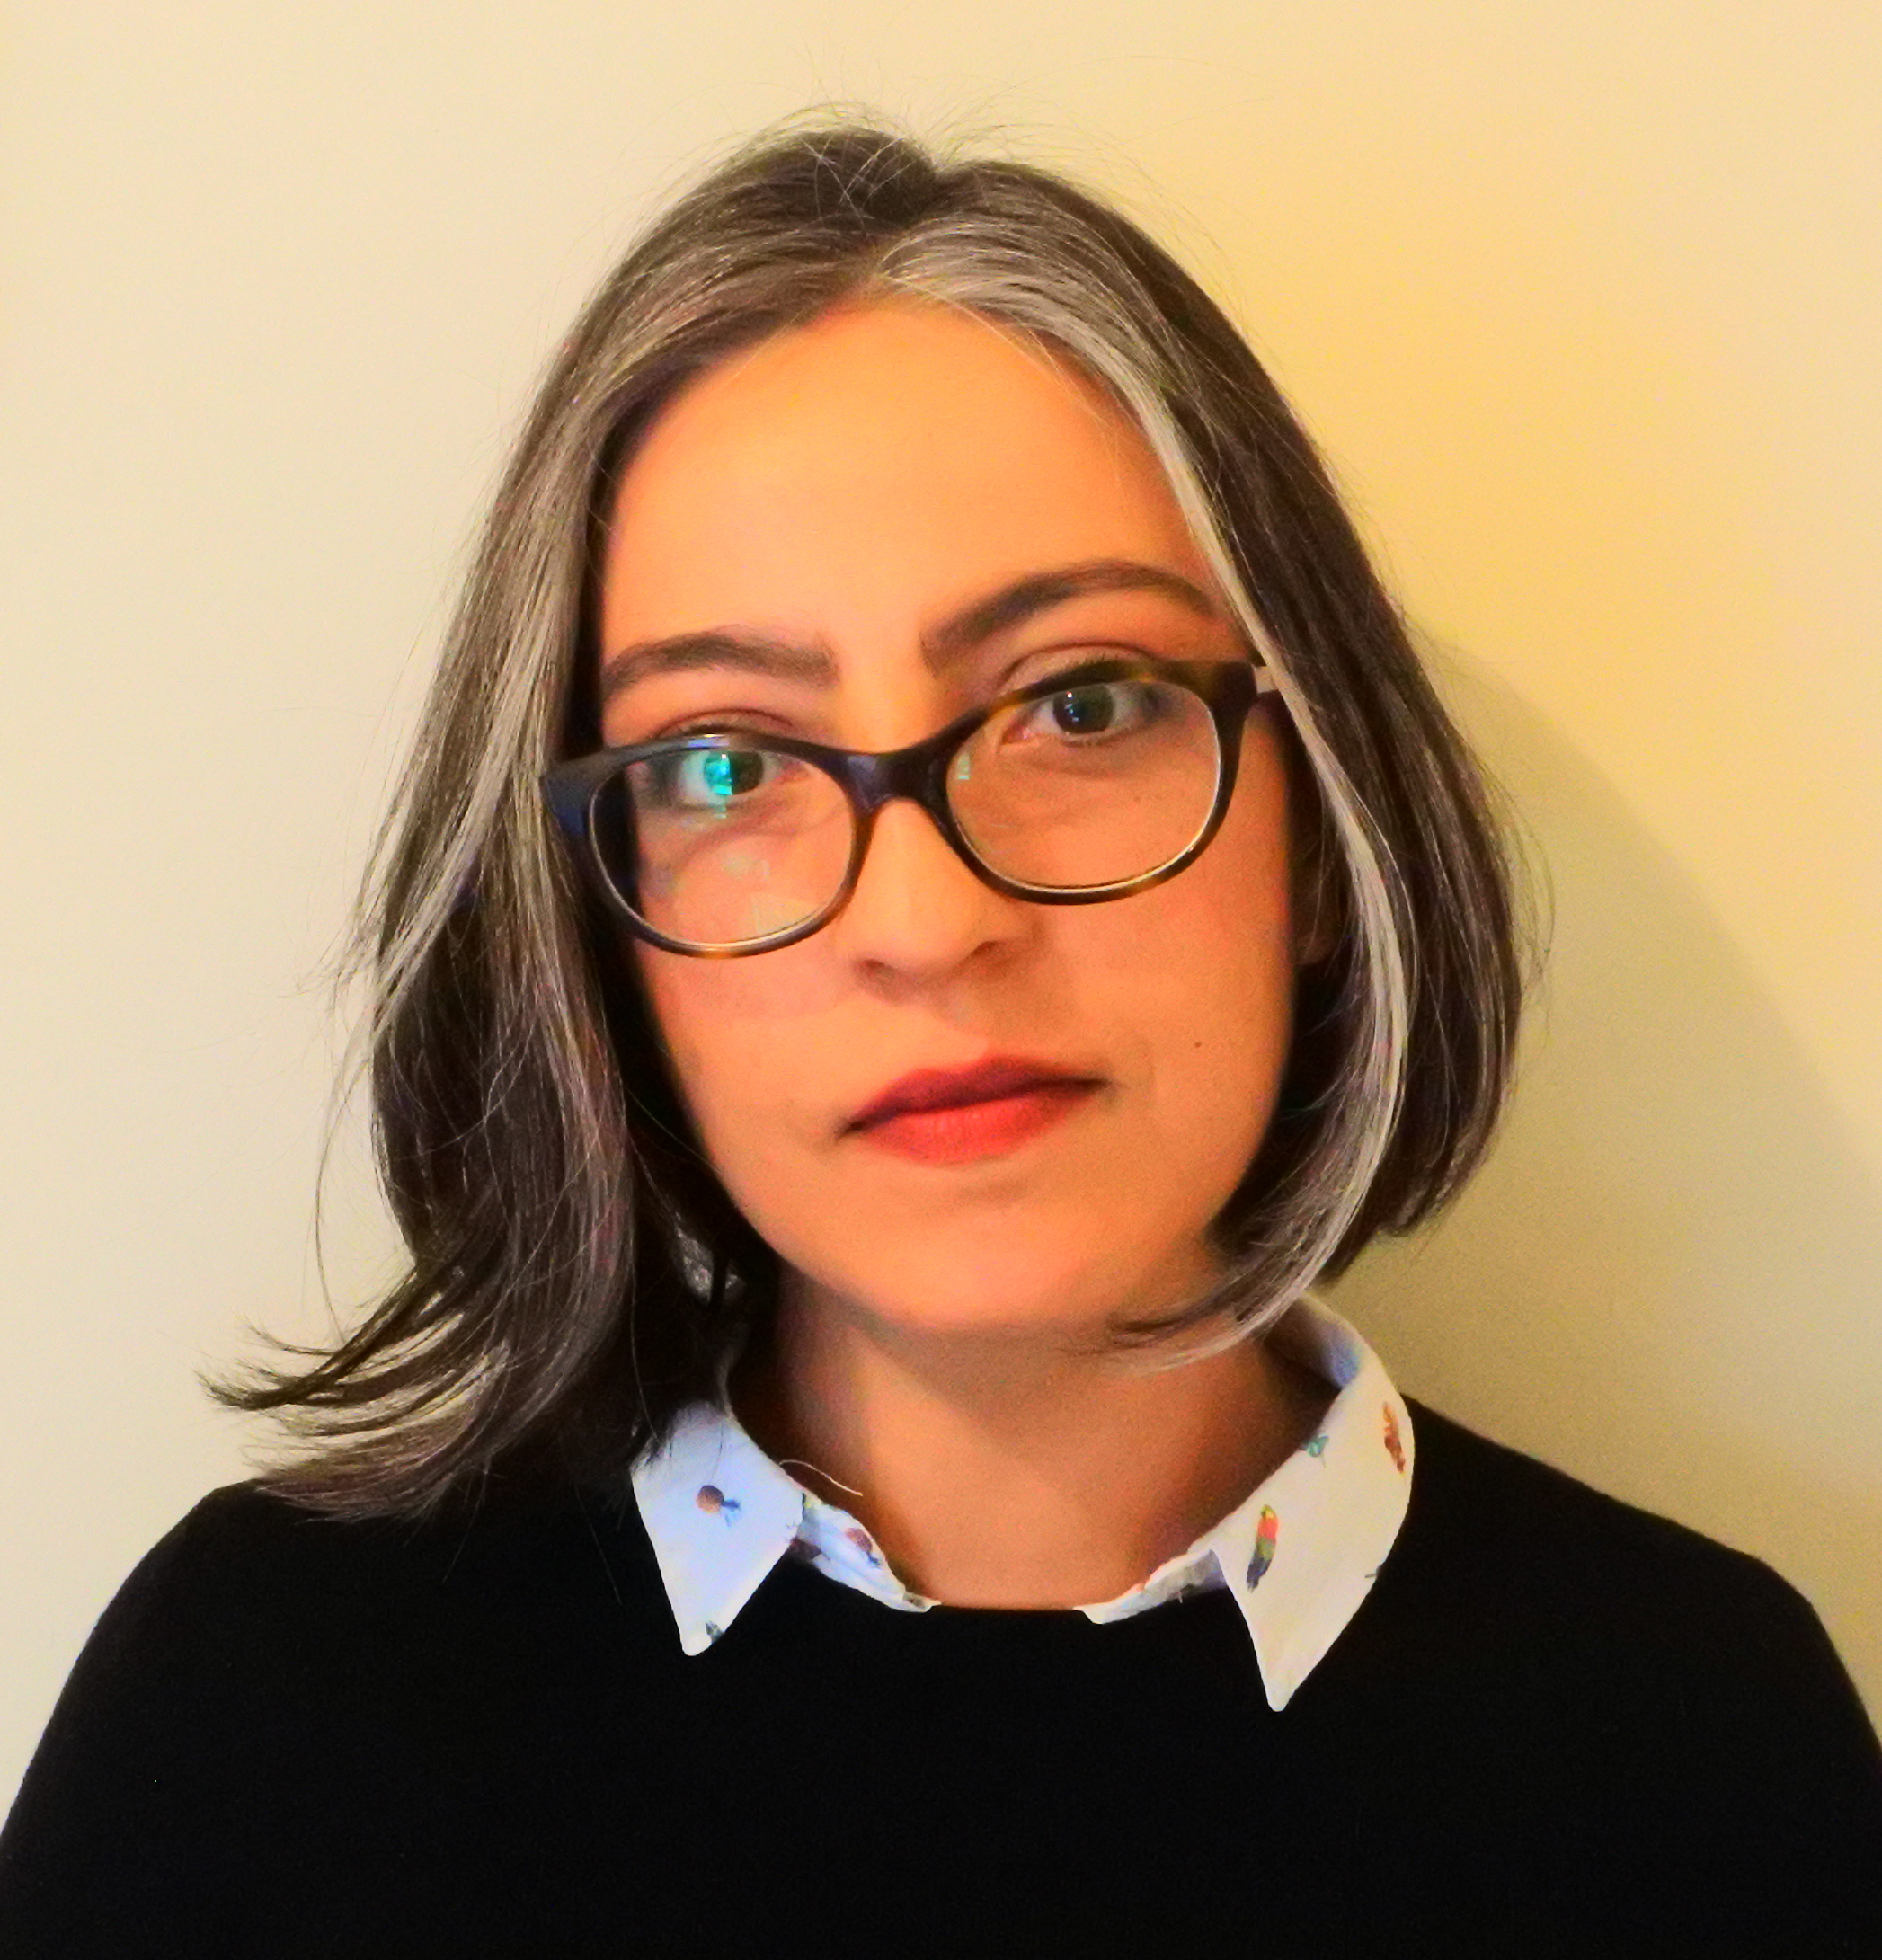 Emine Hande Tuna is a Postdoctoral Research Fellow at Brown University. Her research project on historical and contemporary approaches to imaginative resistance is funded by Social Sciences and Humanities Research Council of Canada.